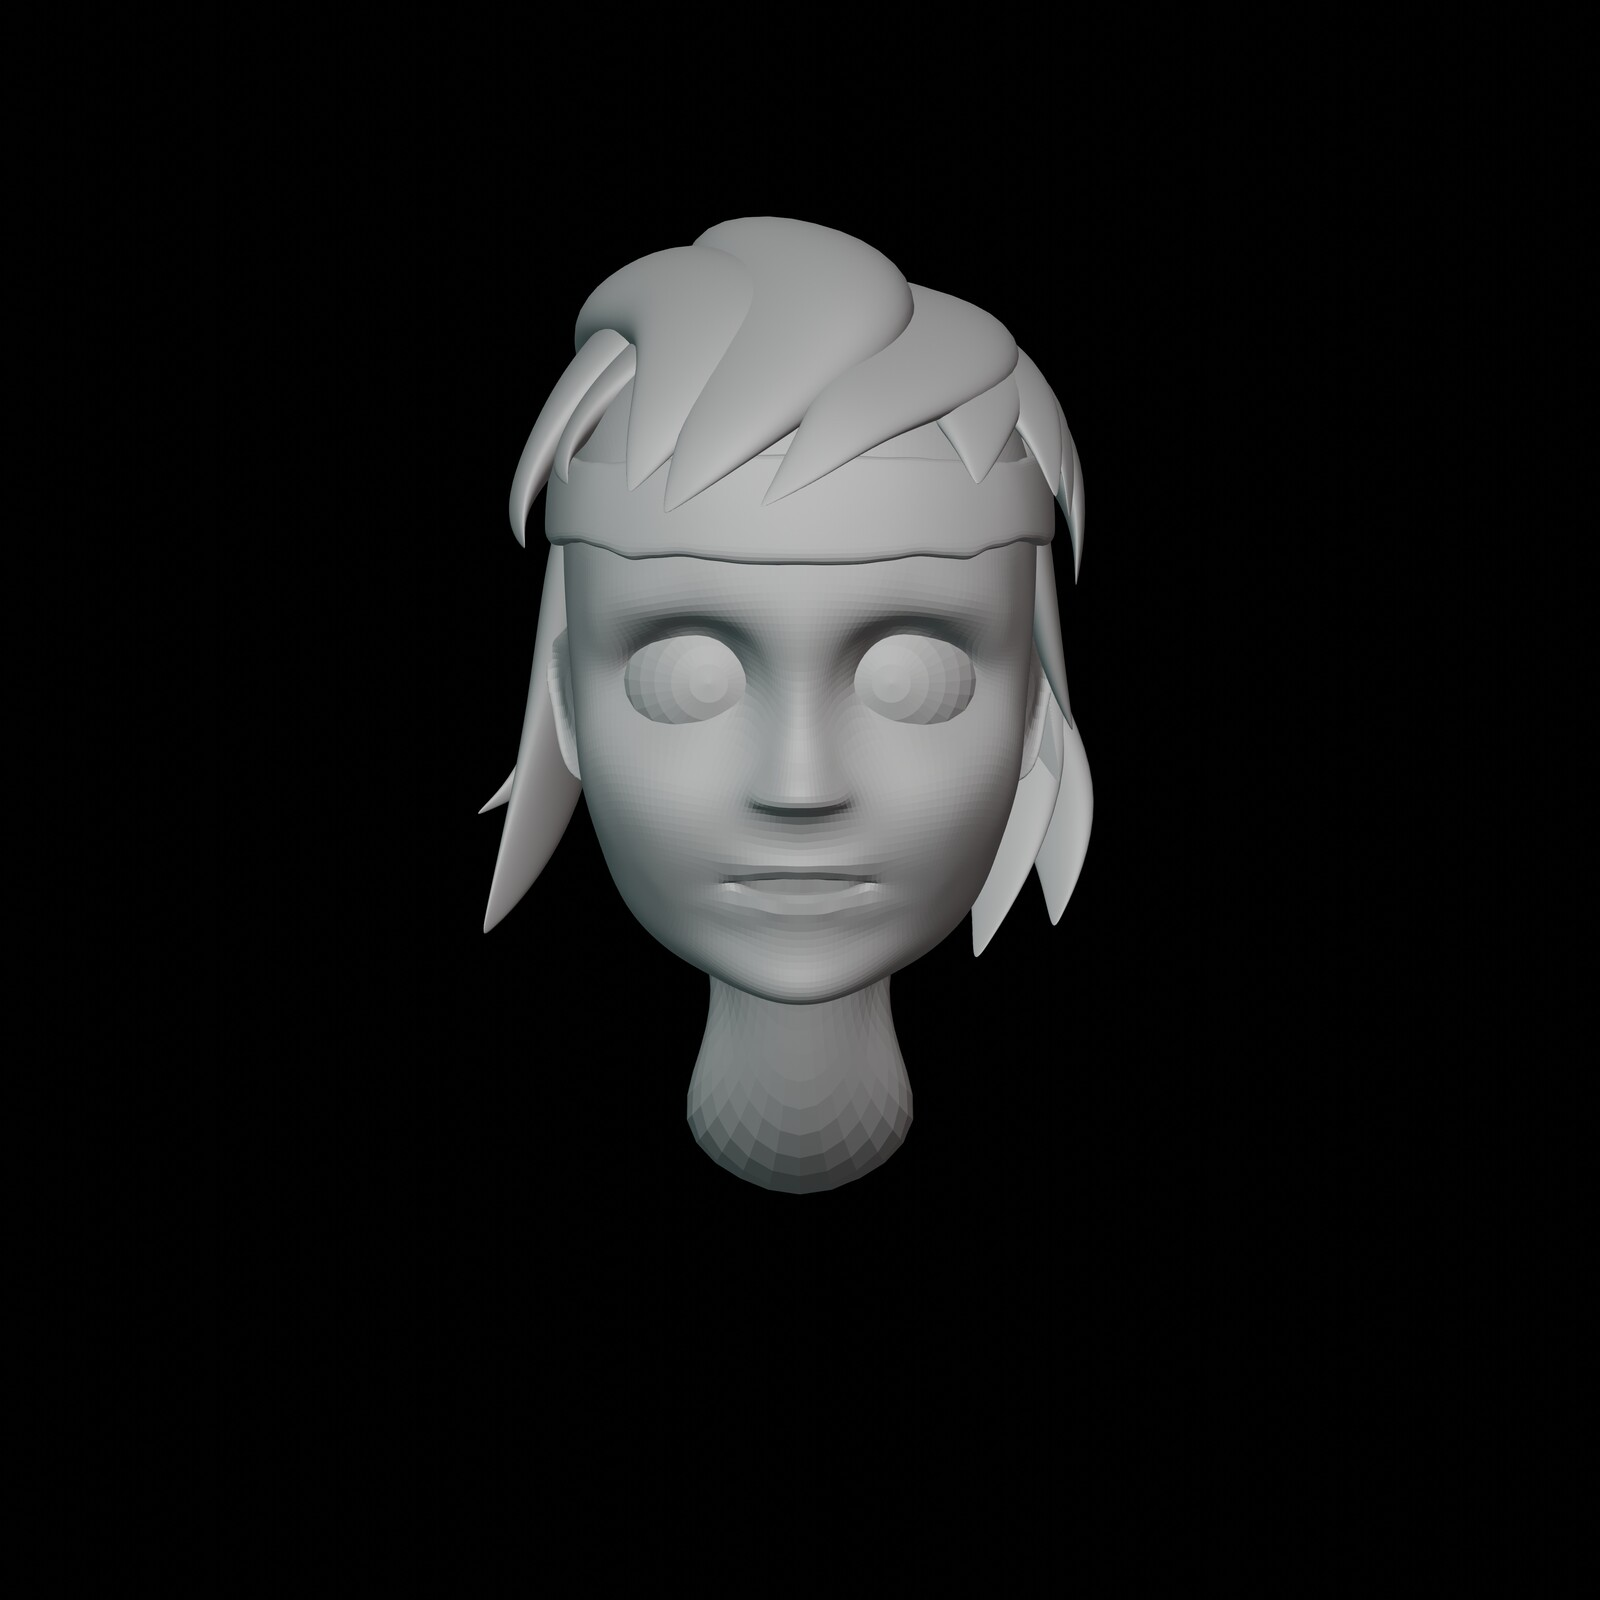 Iteration #1: I first tried getting the shape of the head right. After a while I found out the hair added a lot of mass, so I put some placeholder hairs there to get a better perception of how the head looked.